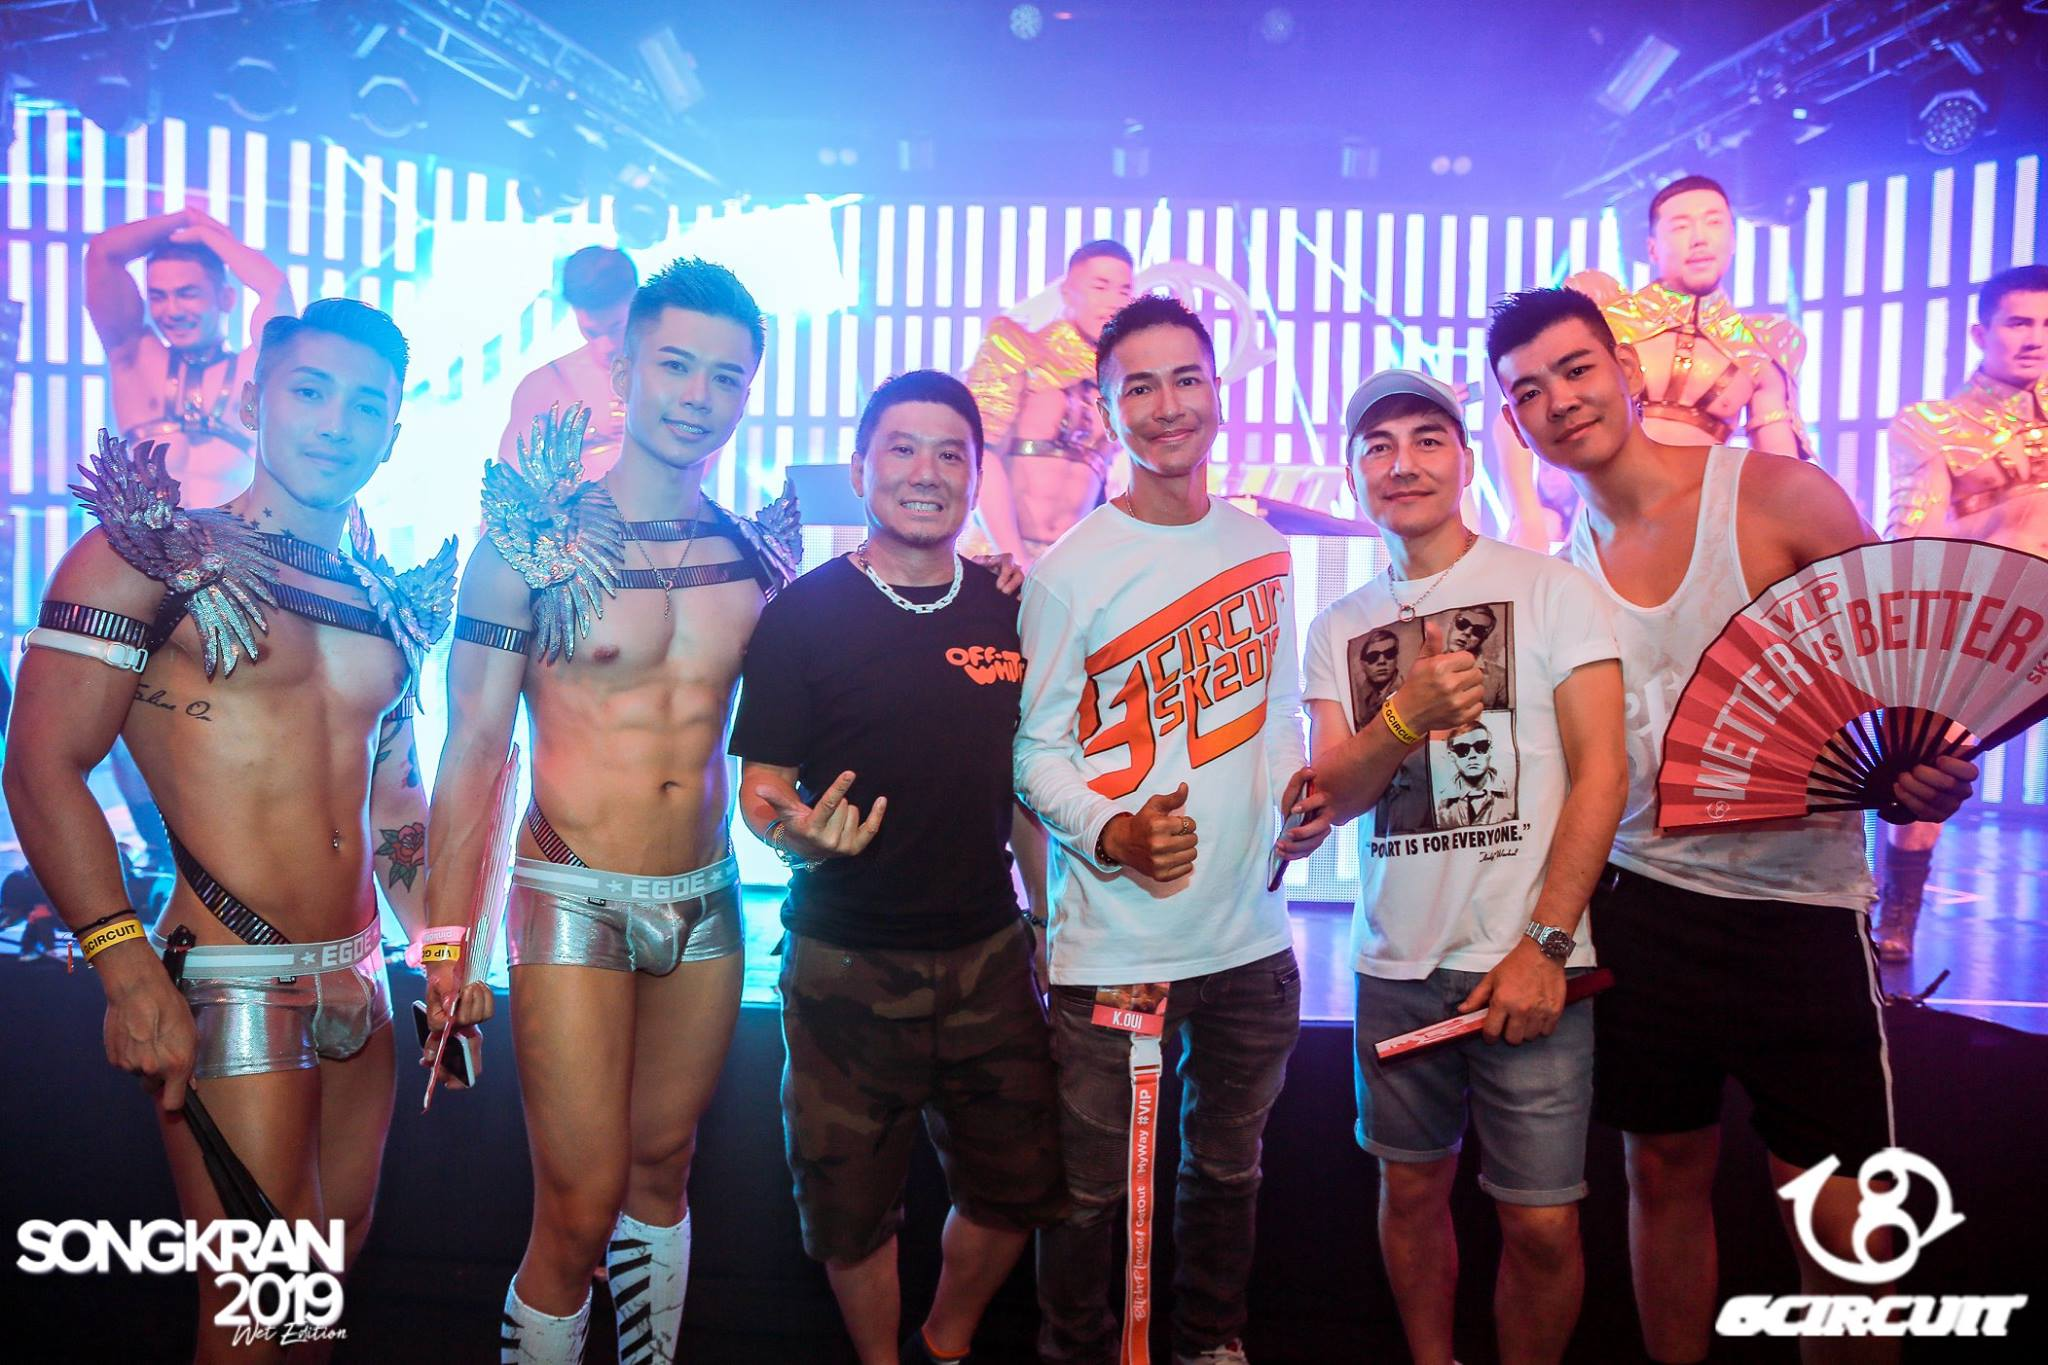 FINAL PHOTO ALBUM OF OPENING PARTY FOR SONGKRAN2019